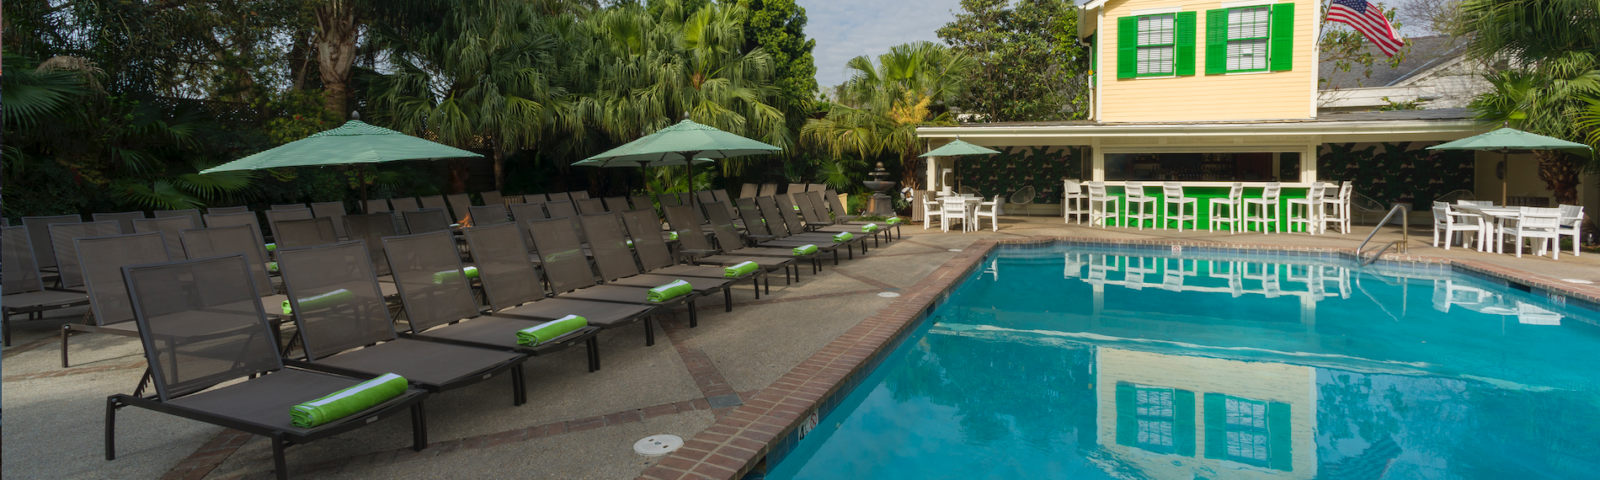 New Orleans Pools to Help You Cool Off This Summer